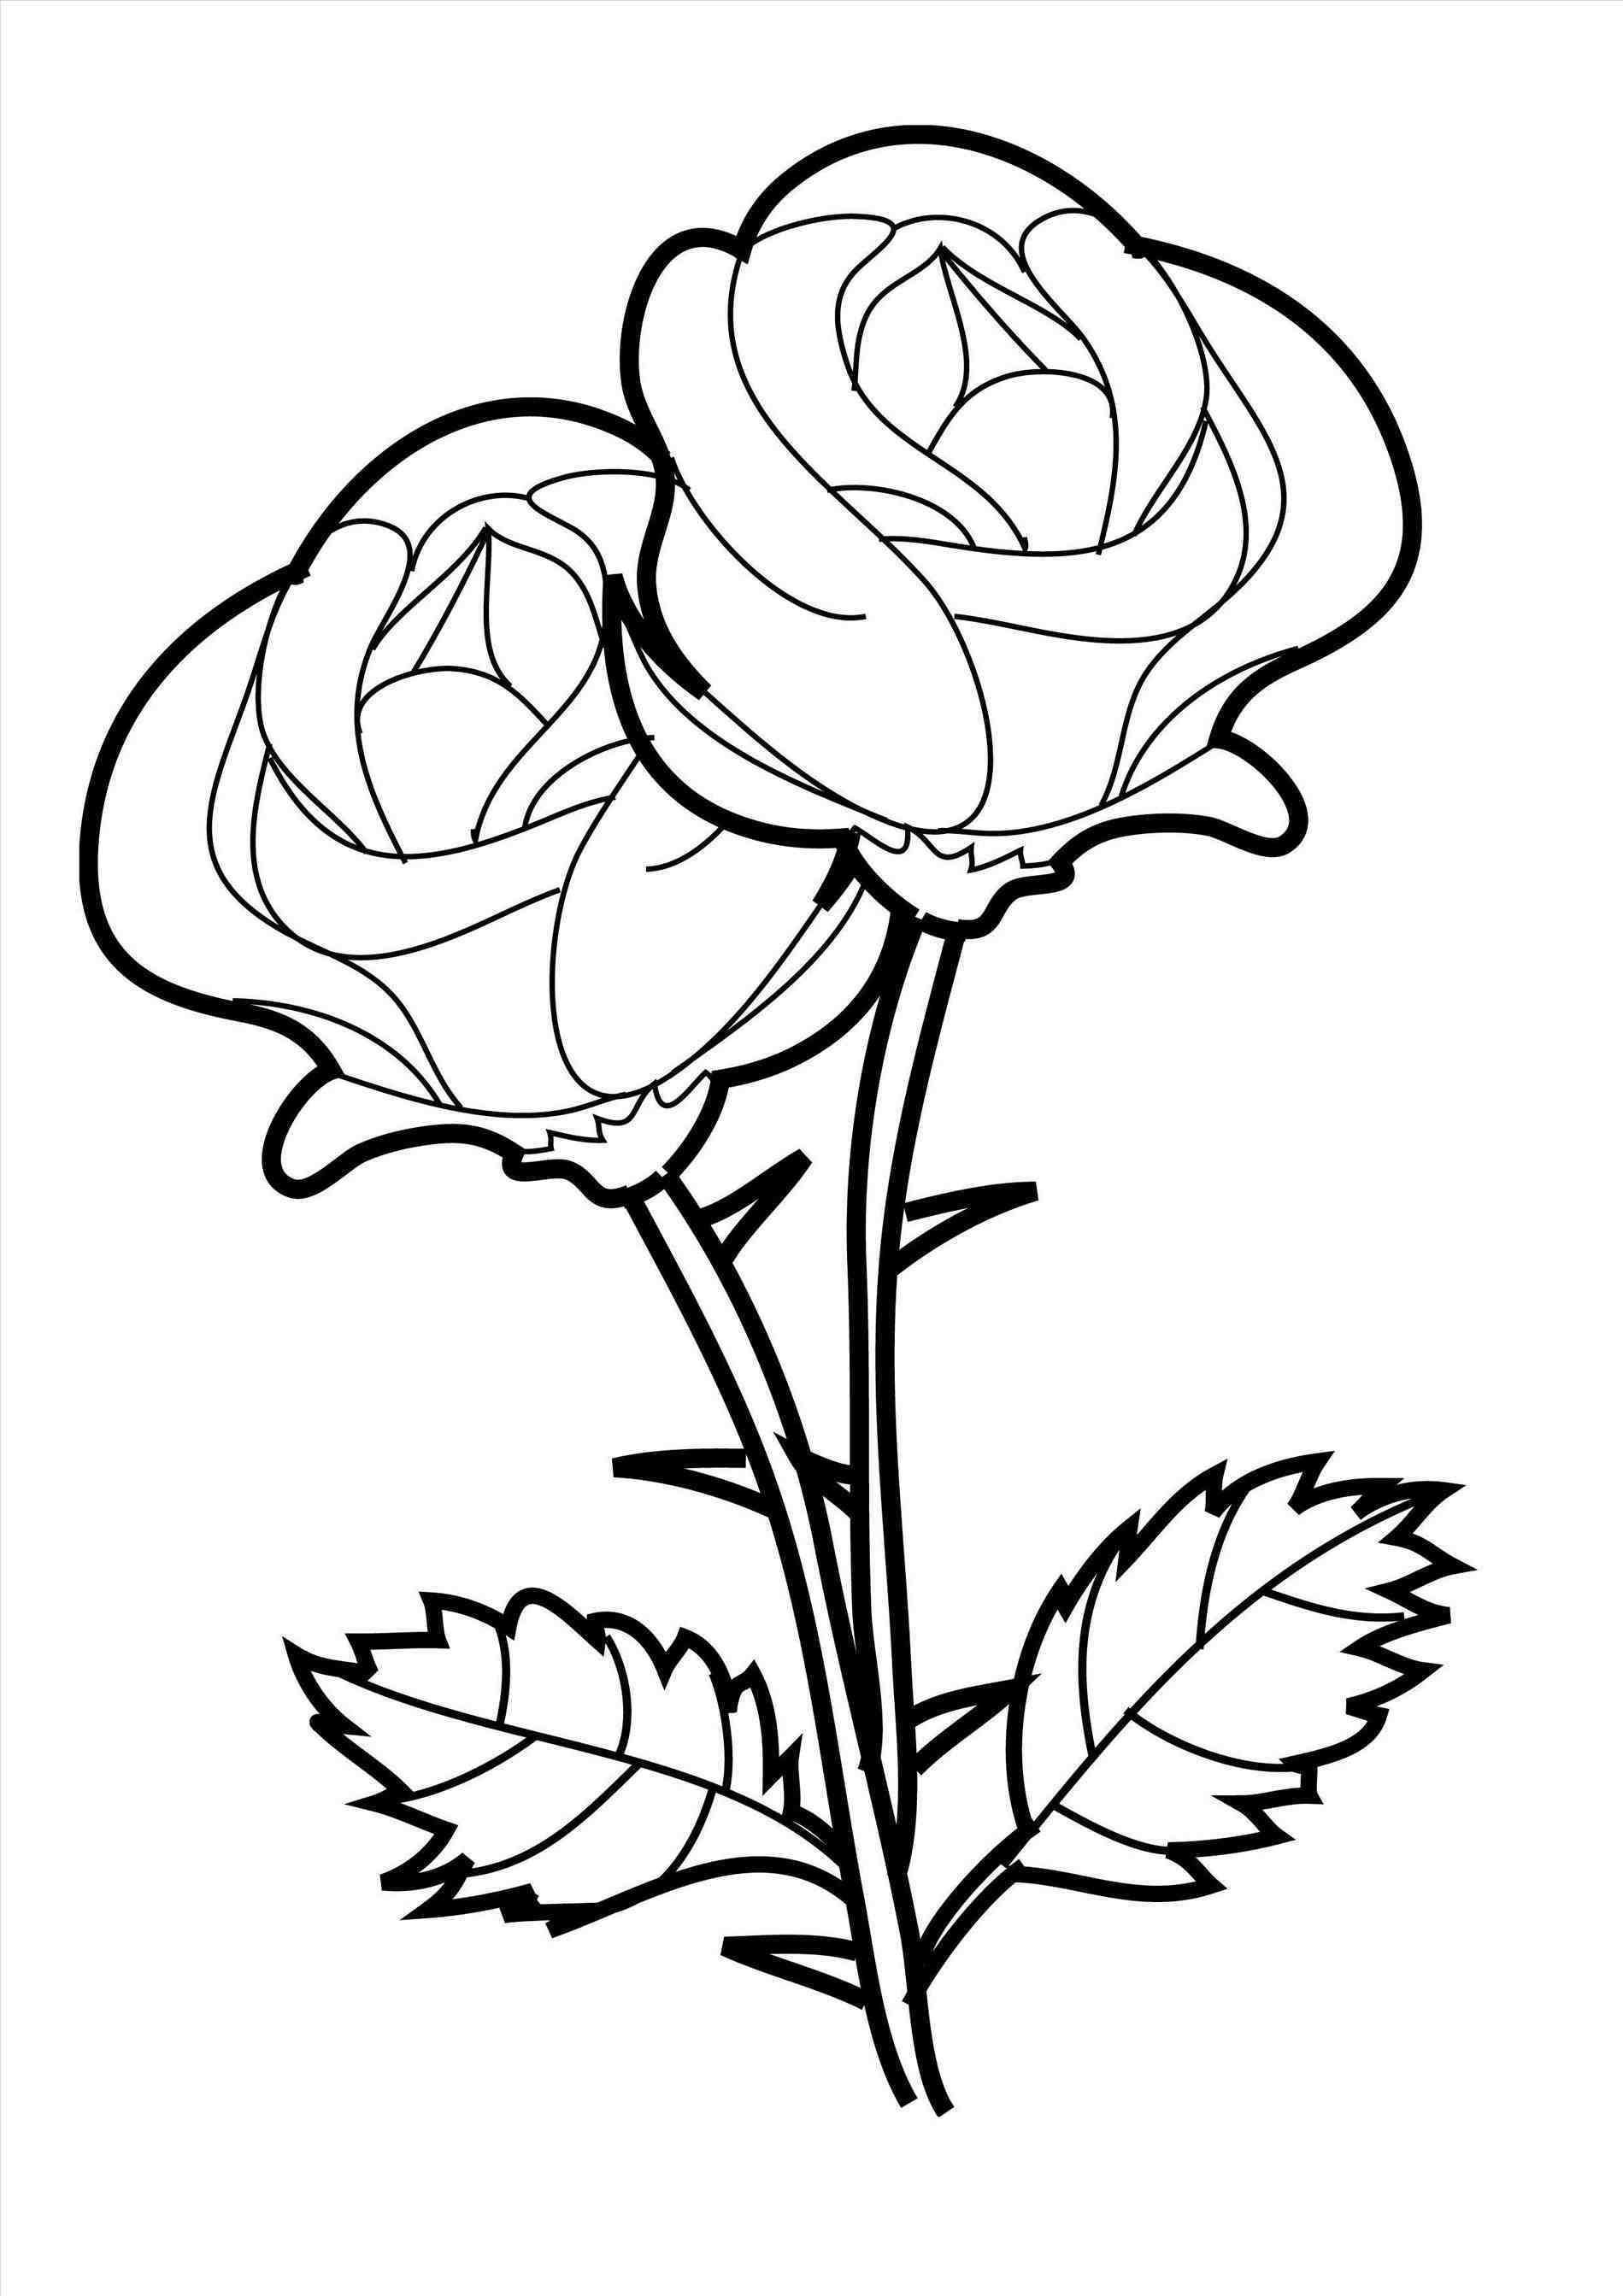 Flower Drawings For Kids Rose Coloring Pages Flower Coloring